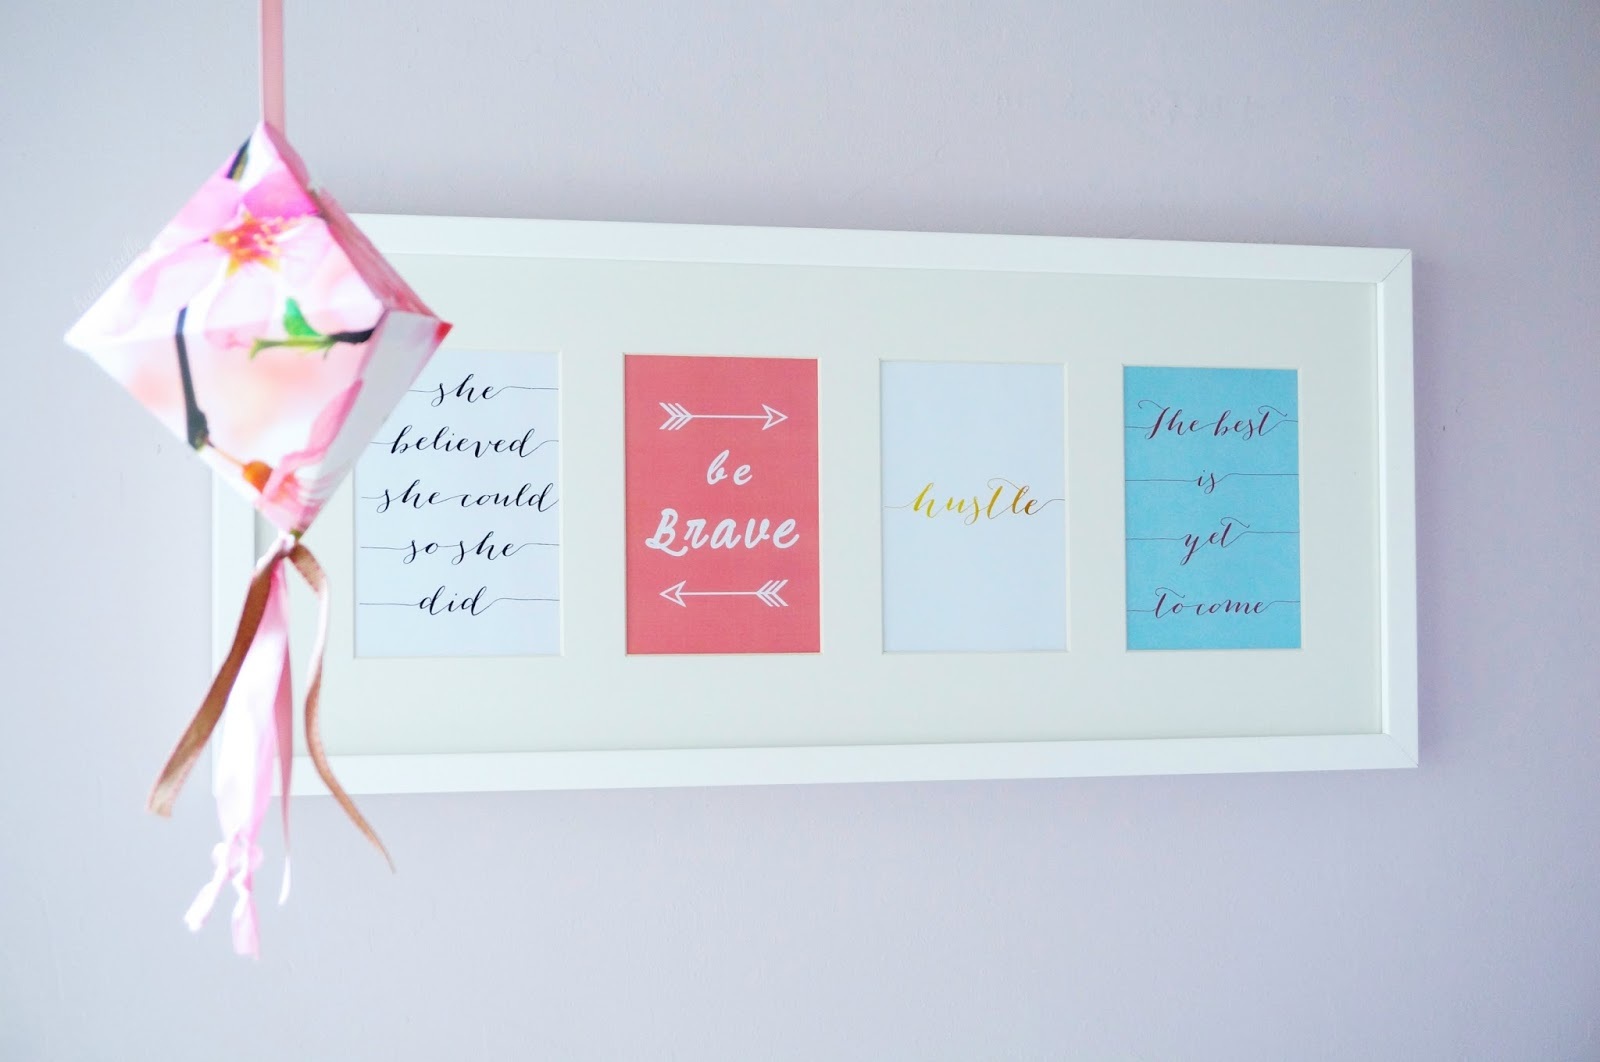 inspiration quotes photo frame